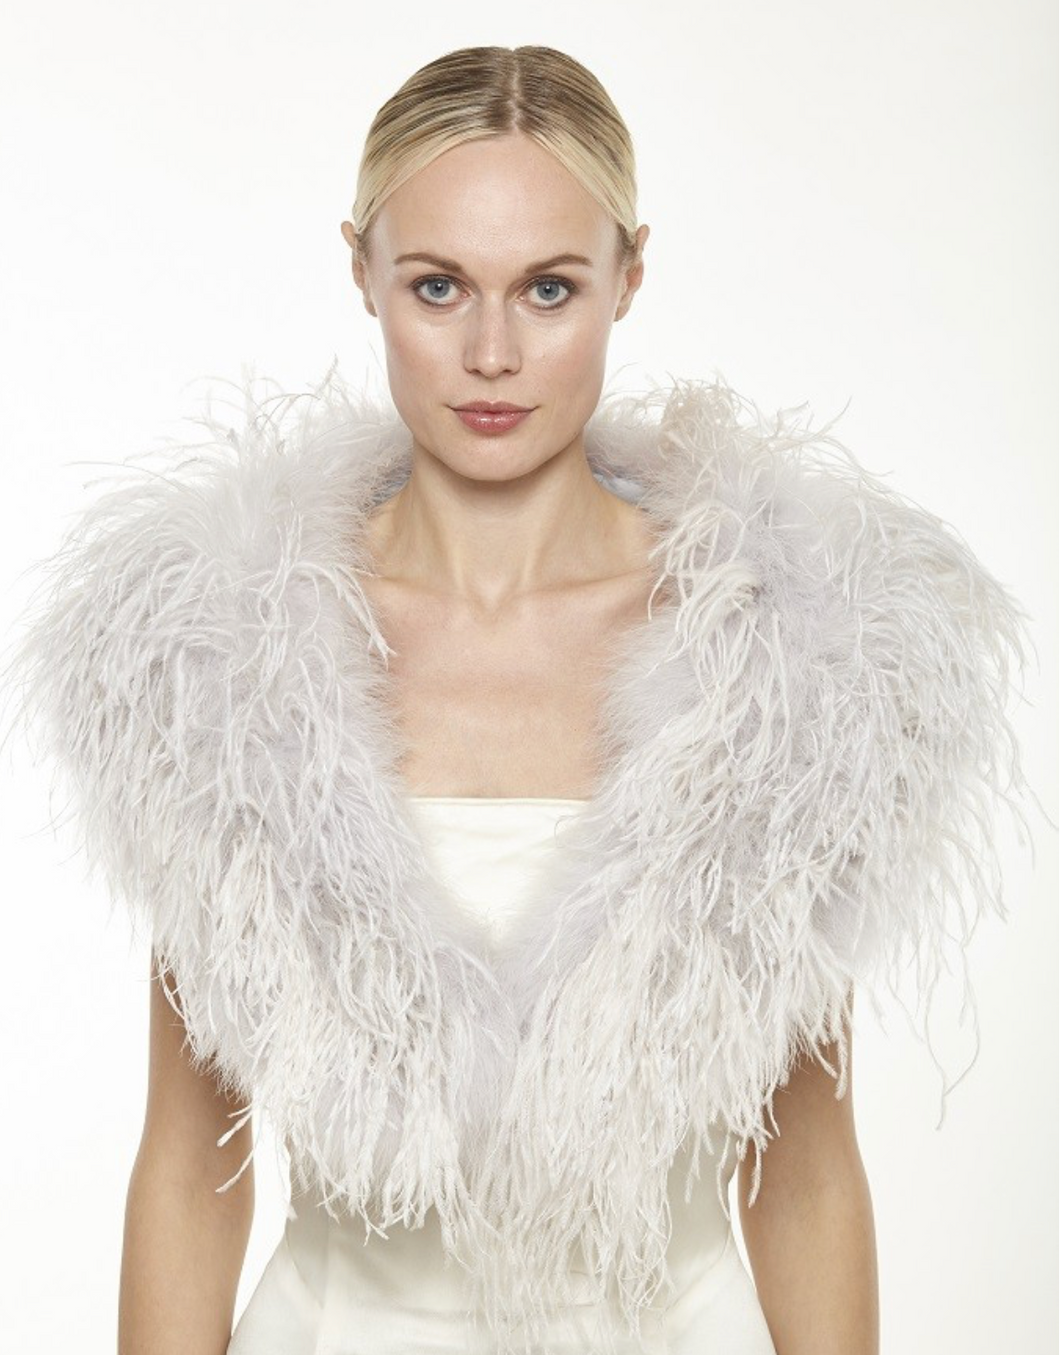 Beautiful-Woman-Wearing-Feather-Cape-by-Linda-Richards-New-York-FT33-Dove-Grey